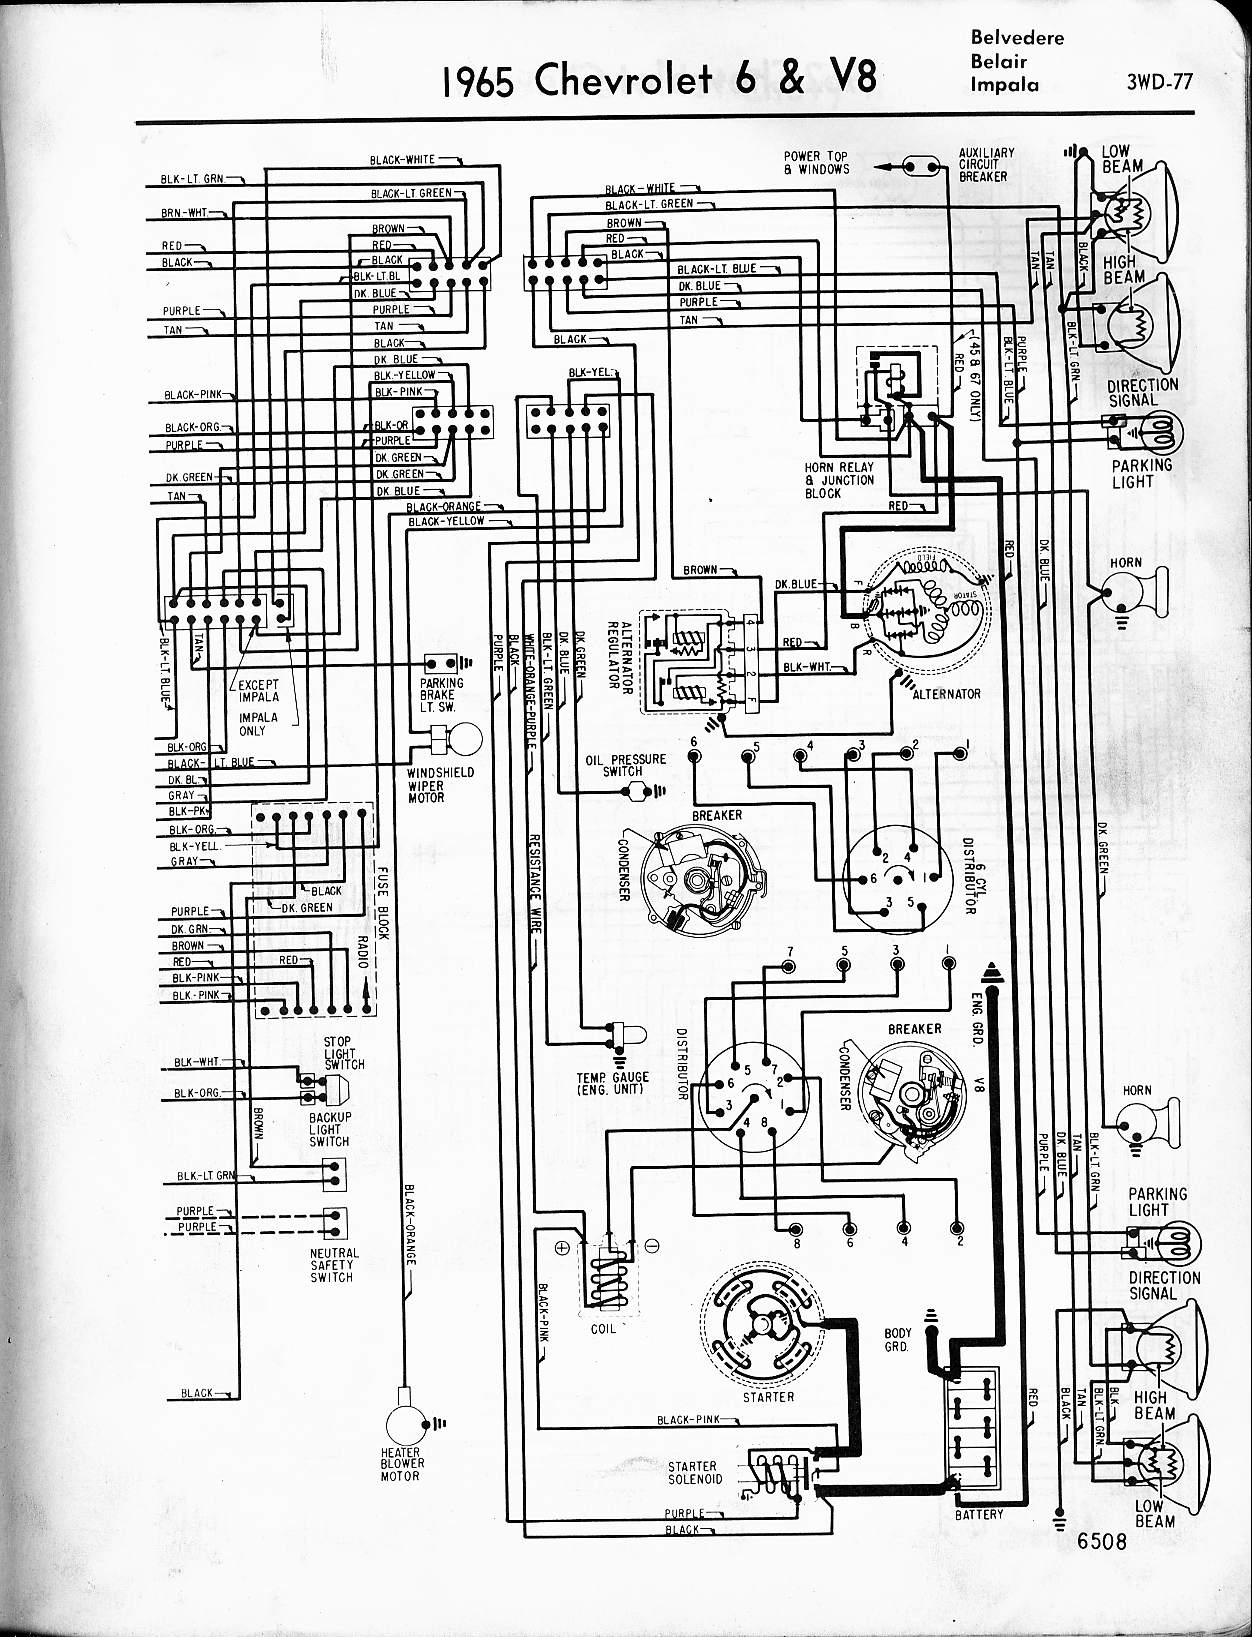 MWireChev65_3WD 077 chevy diagrams 1967 chevelle wiring diagram at webbmarketing.co